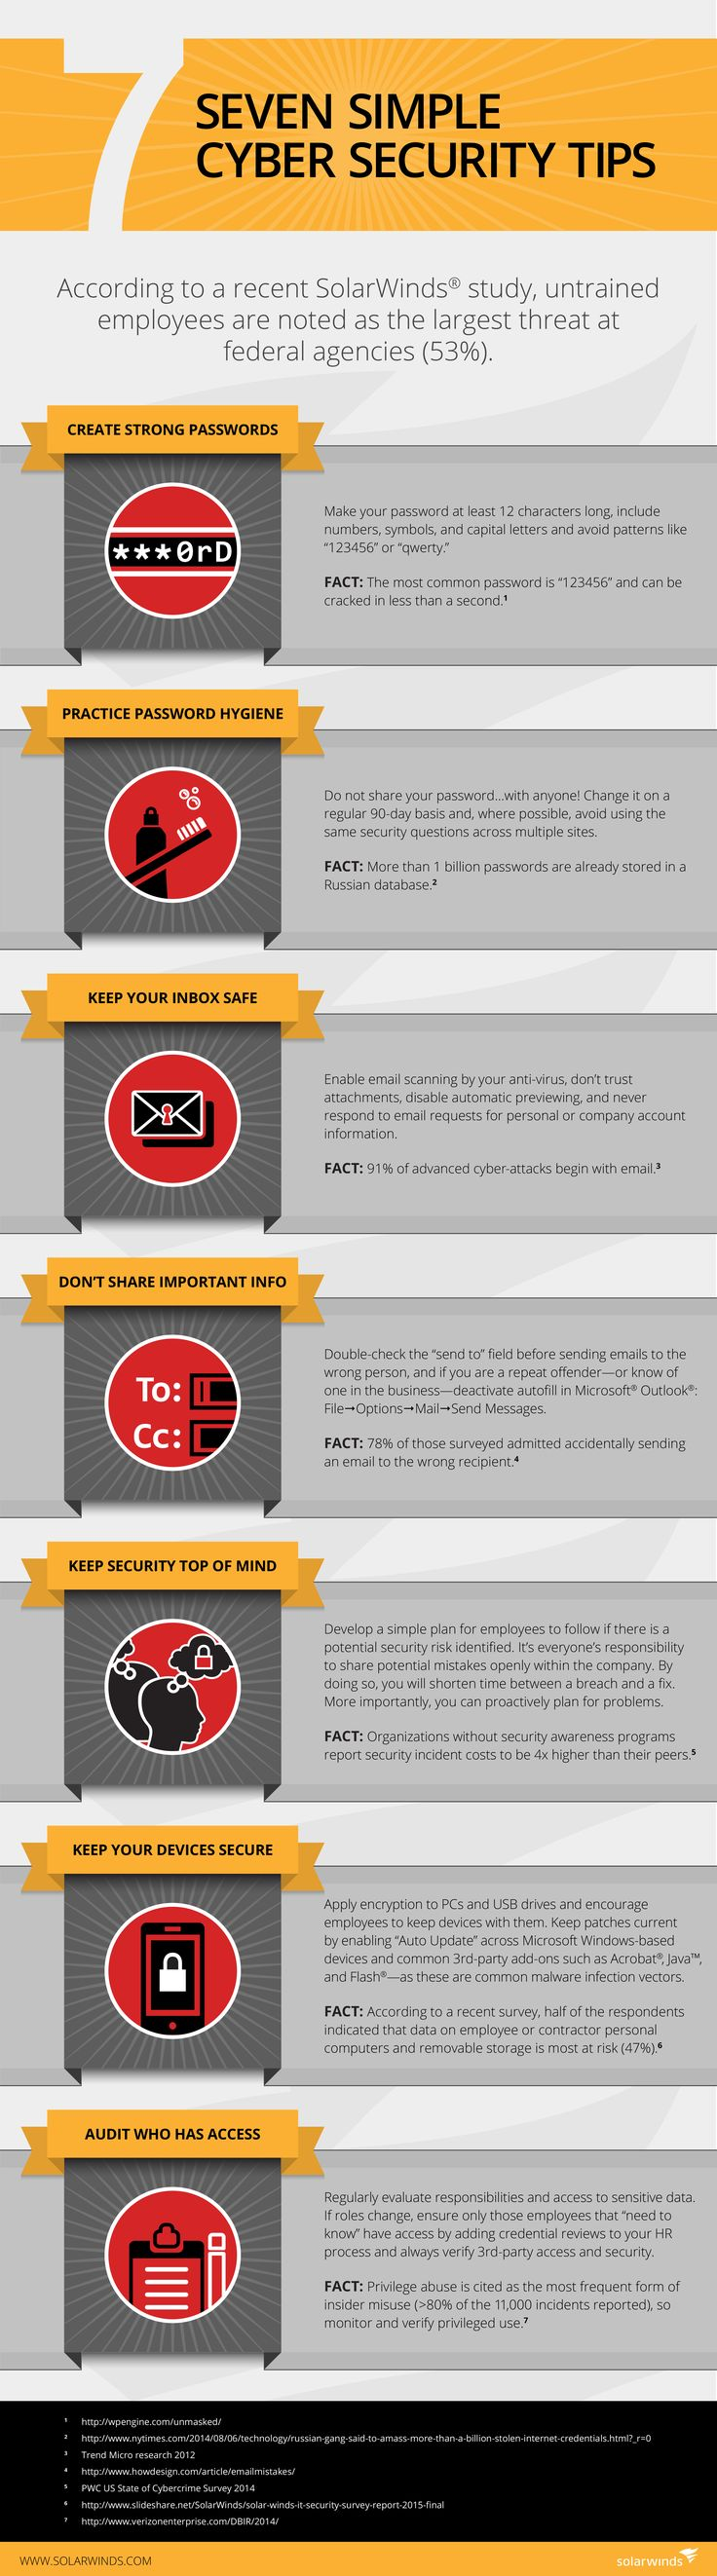 7 Tips To Keep Your Business Safe From Hackers [Infographic]